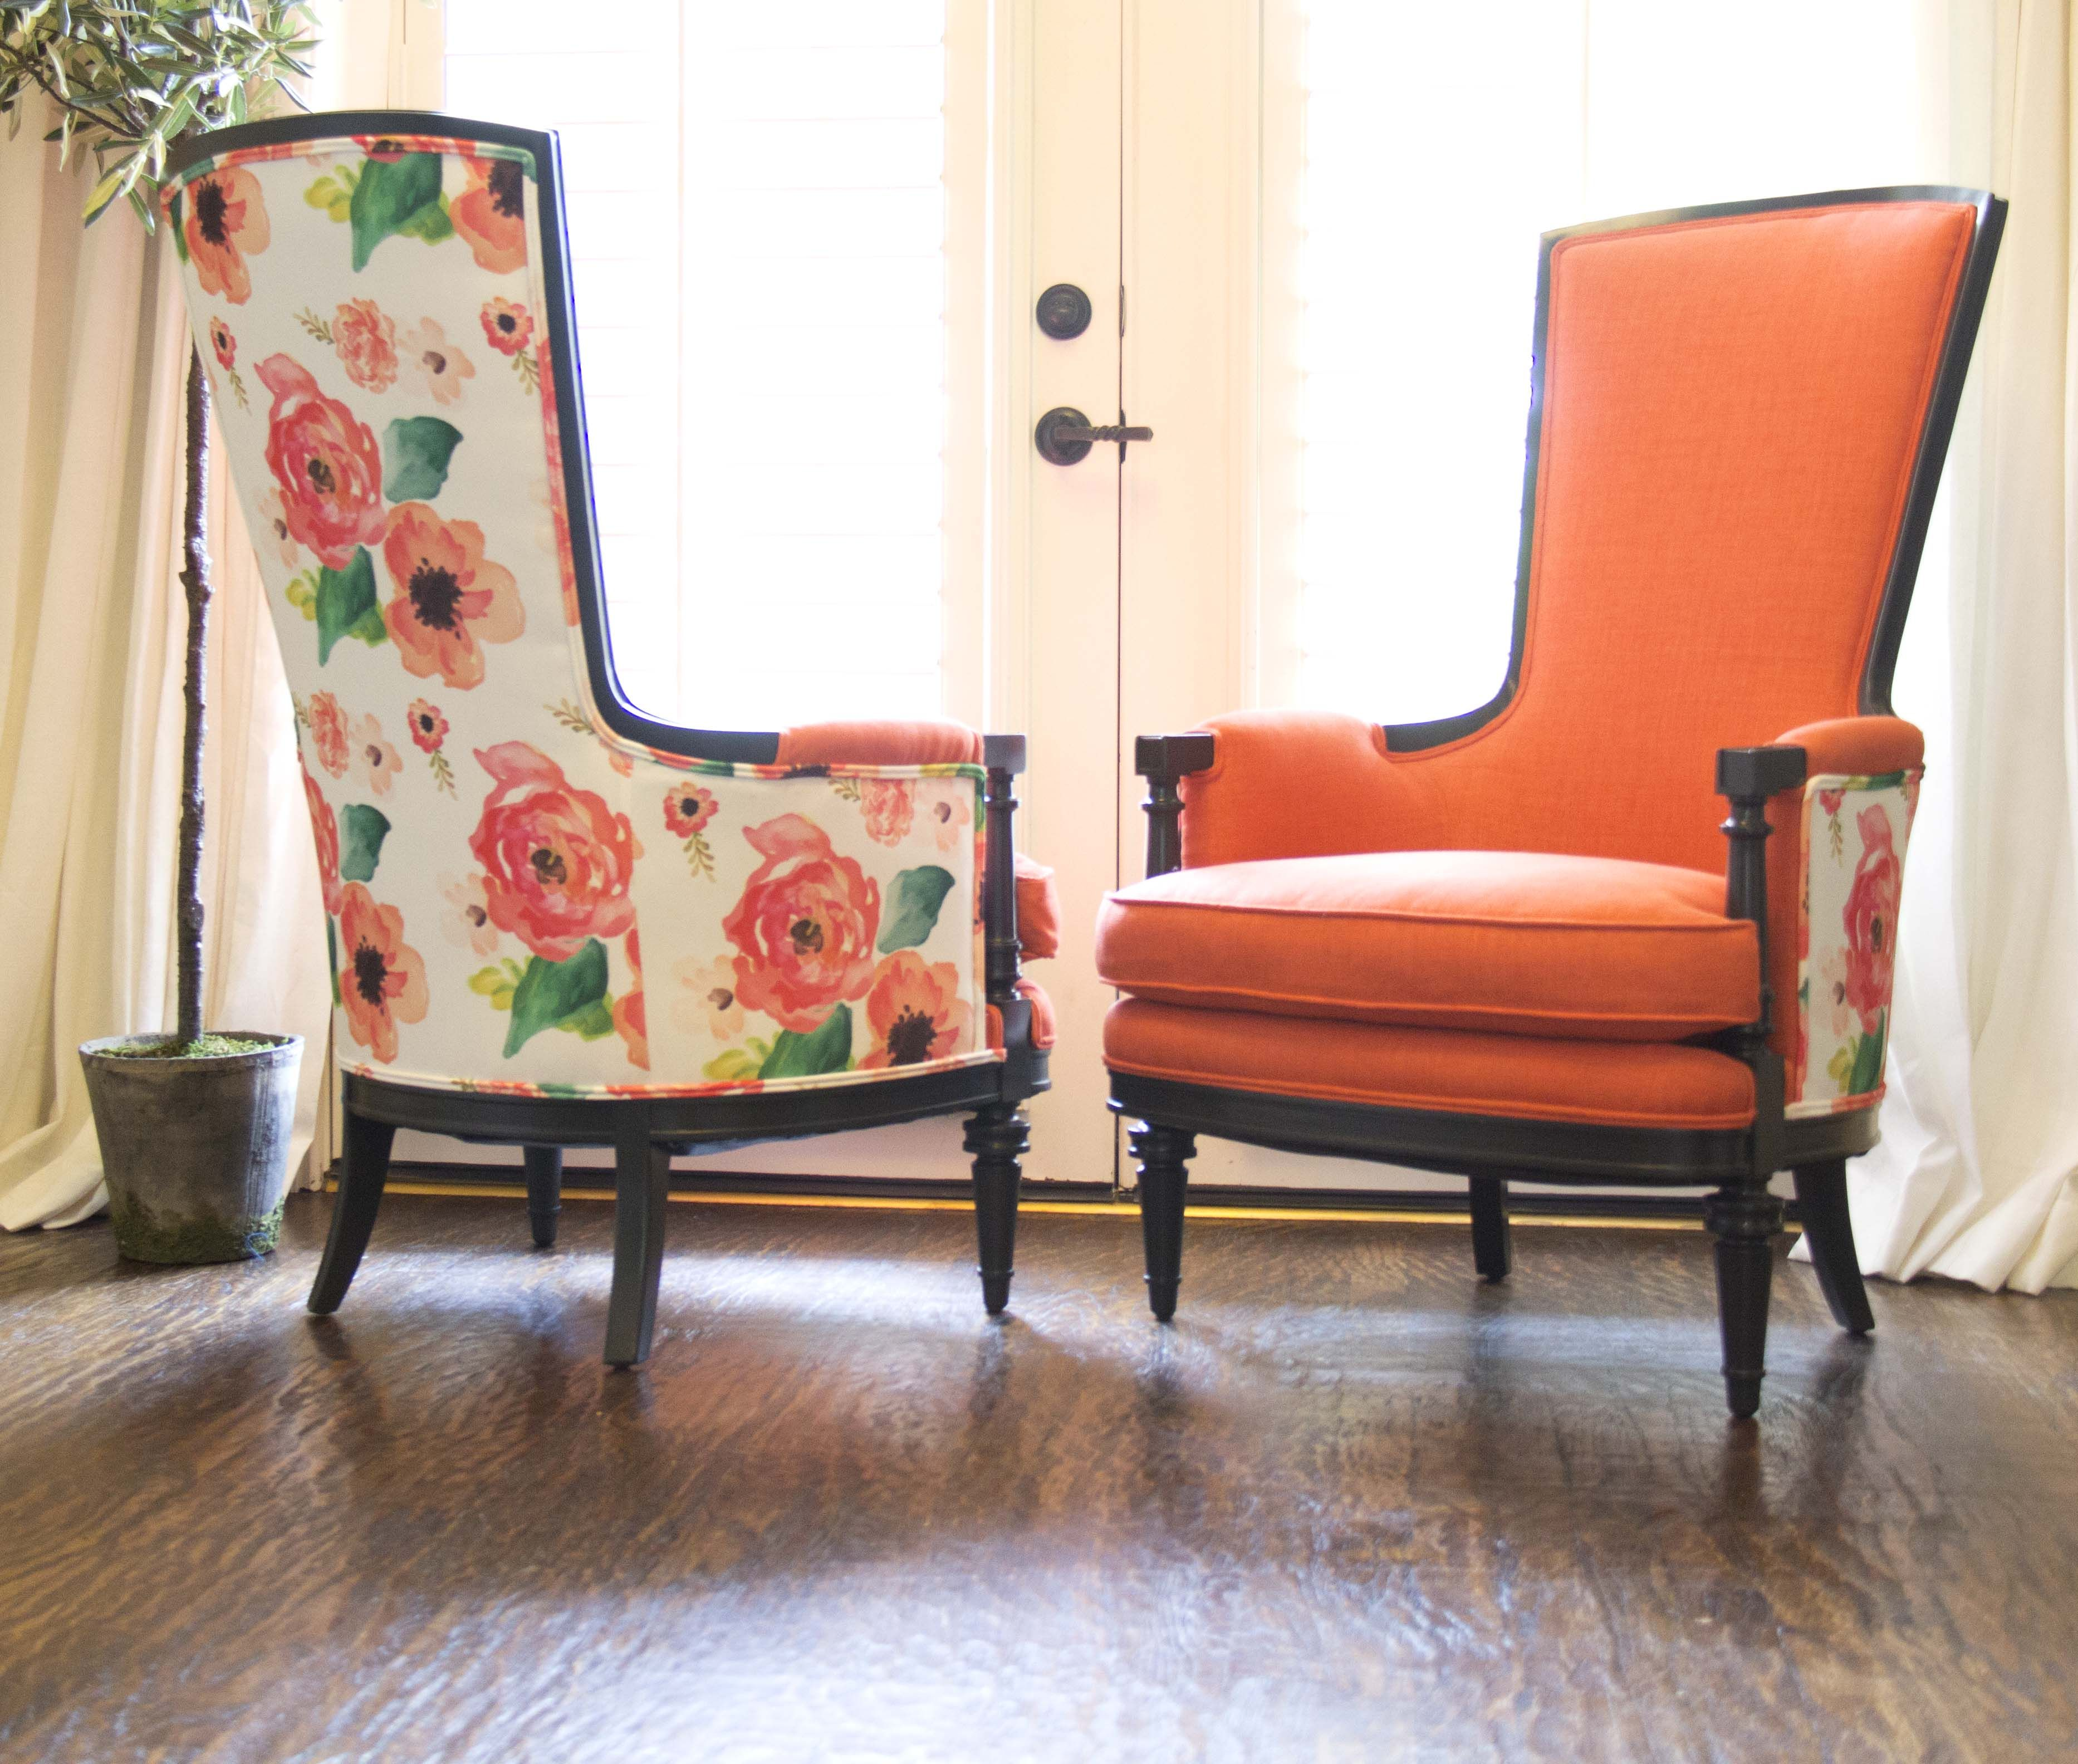 10 New Ways to Re-Upholster Old Furniture   Apartment